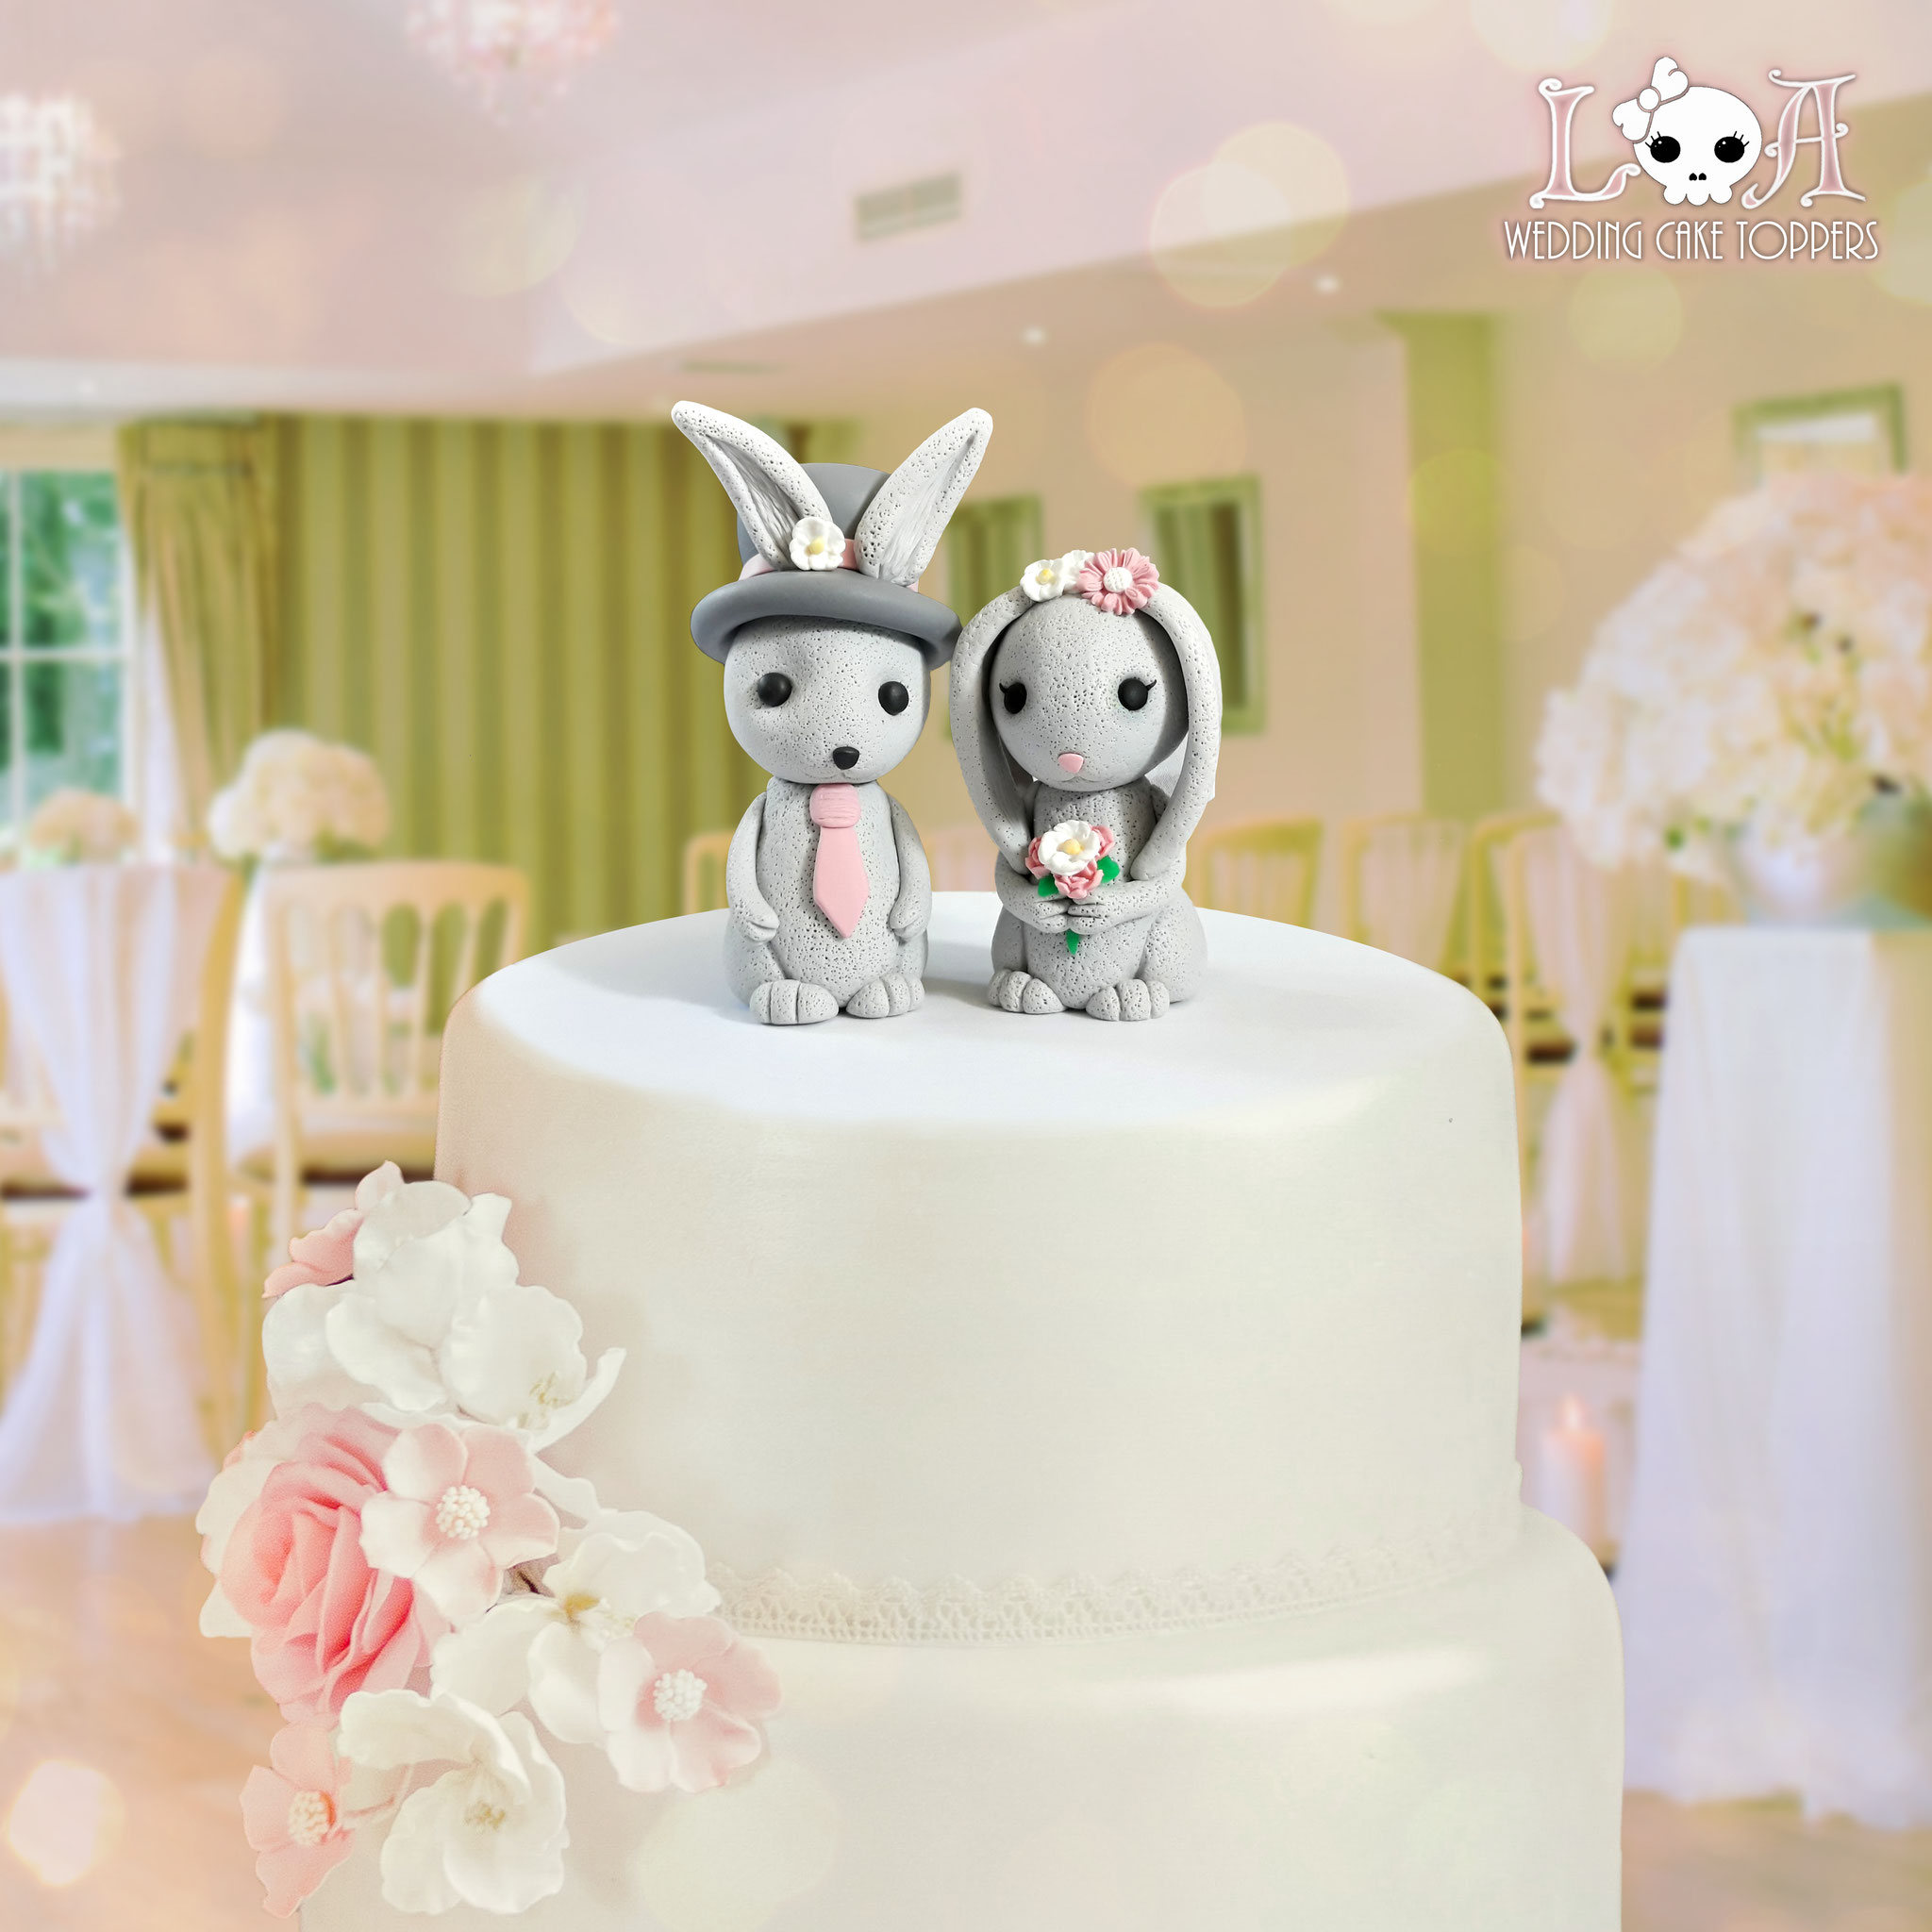 Kawaii Bunny Rabbit Wedding Cake Toppers